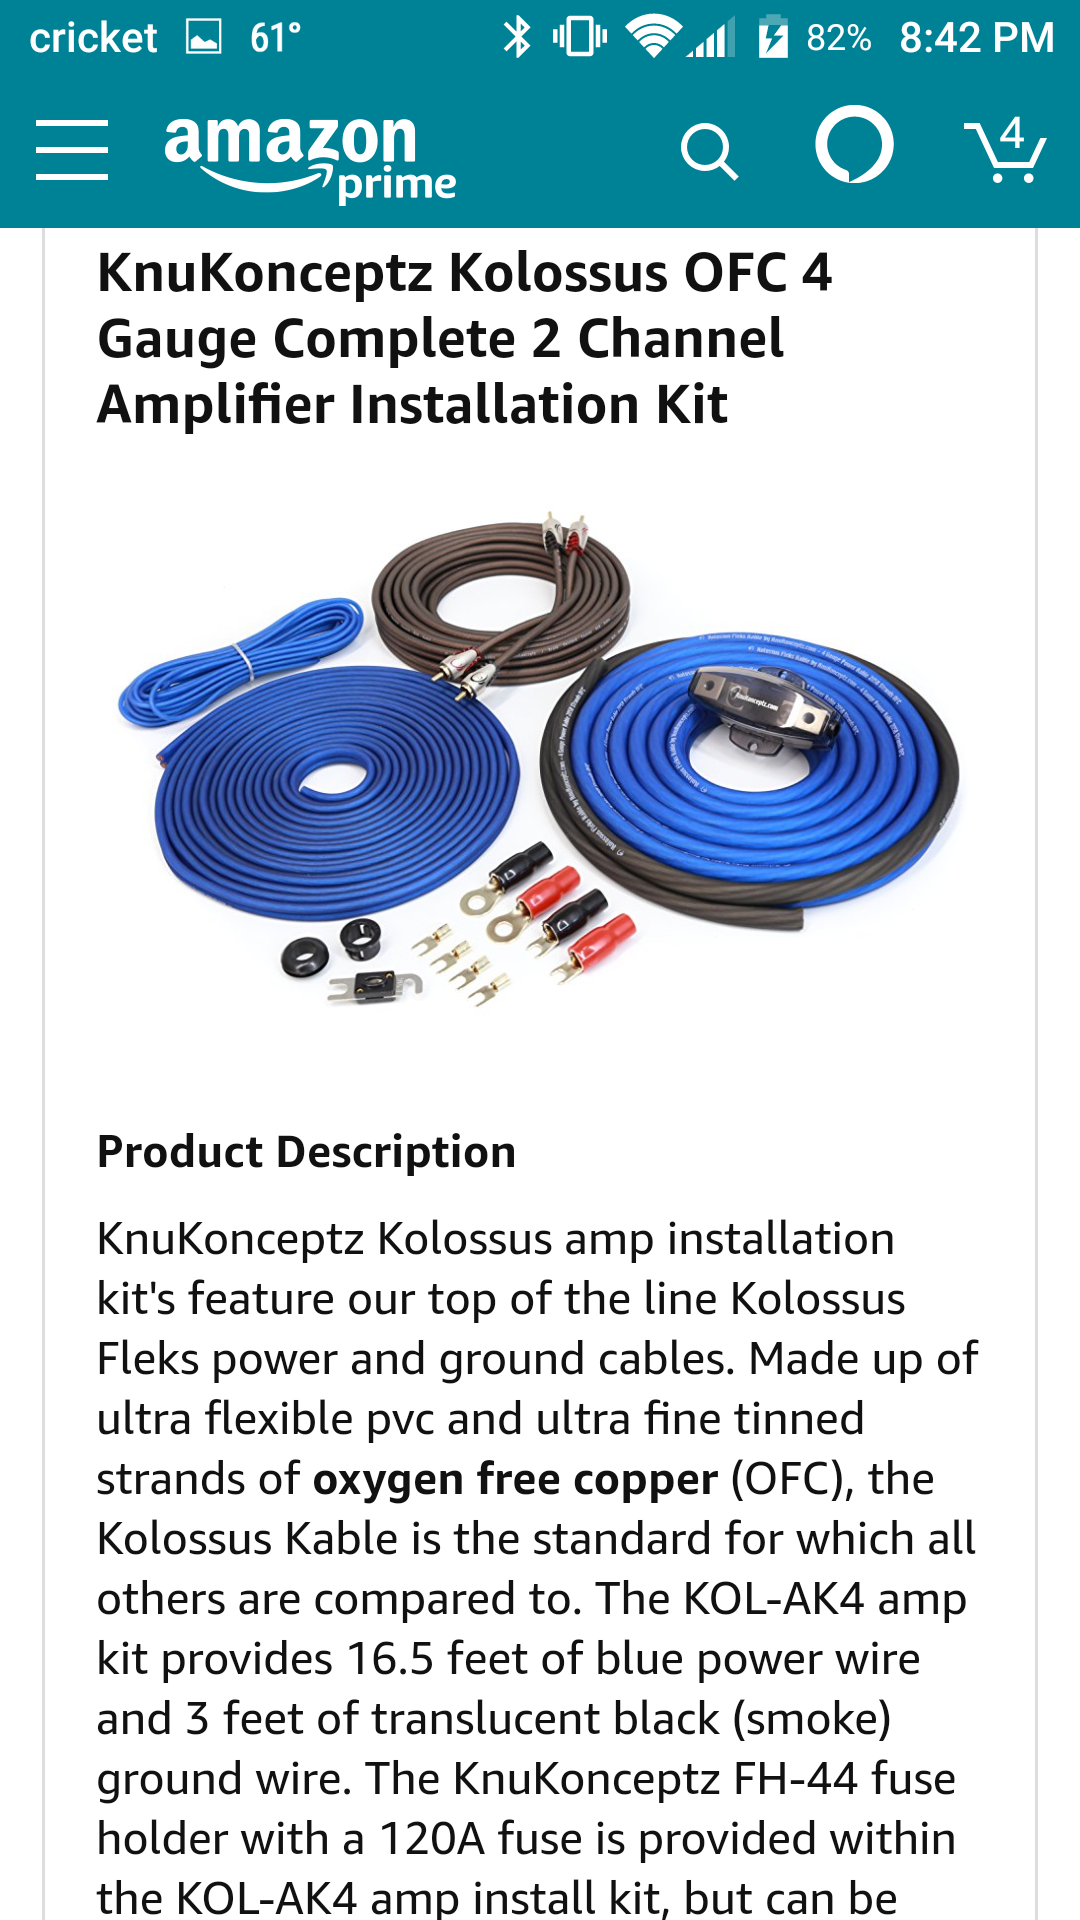 Knukonceptz Kolossus Amp Wiring Kit Or Rockford Fosgate 4 Awg Pro Gauge Amplifier Install Complete Car Audio Cables